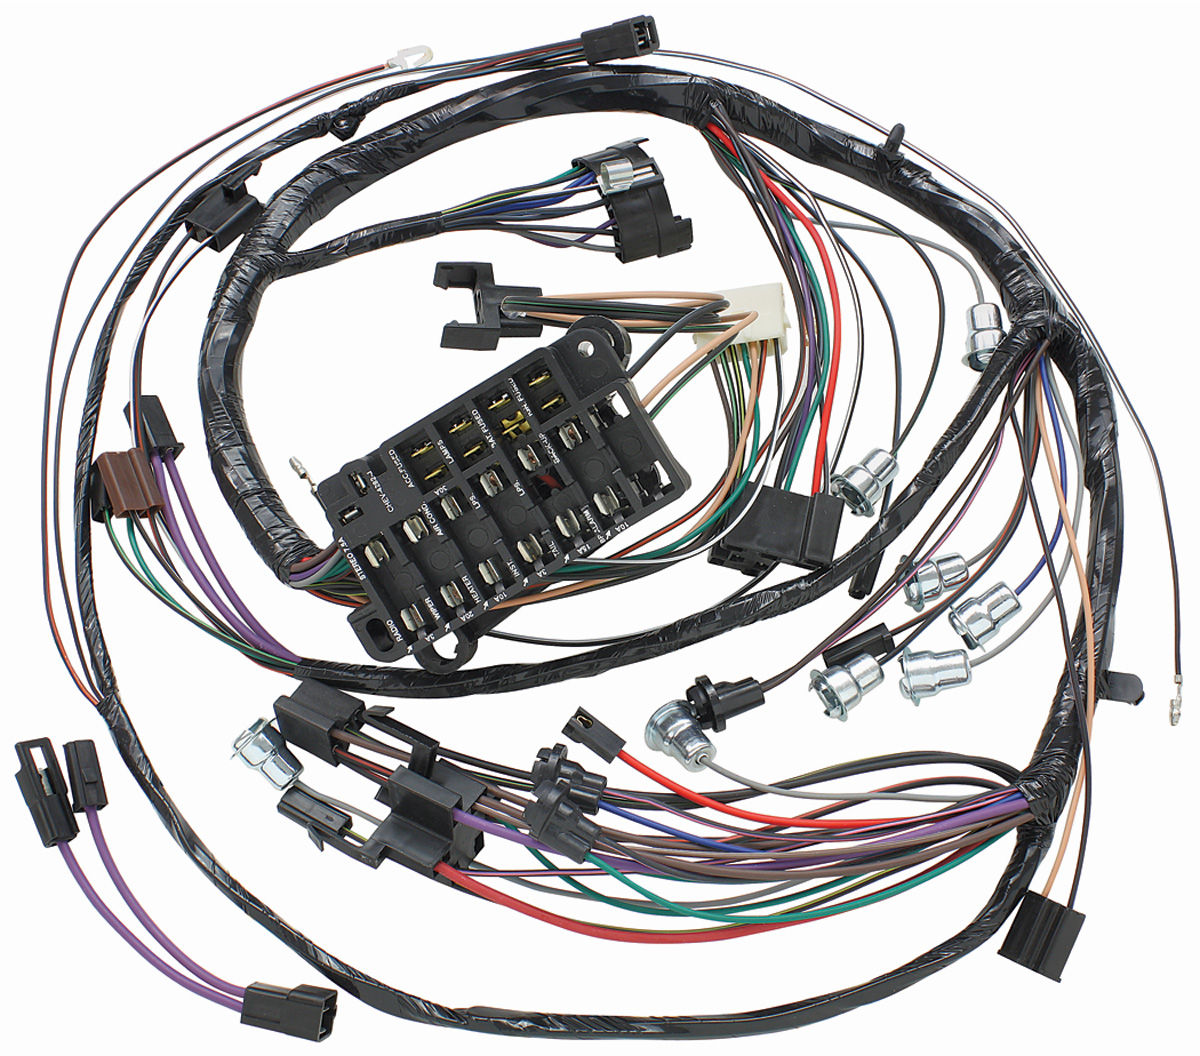 Phenomenal 67 Chevelle Fuse Box Wiring Diagram Wiring Cloud Peadfoxcilixyz